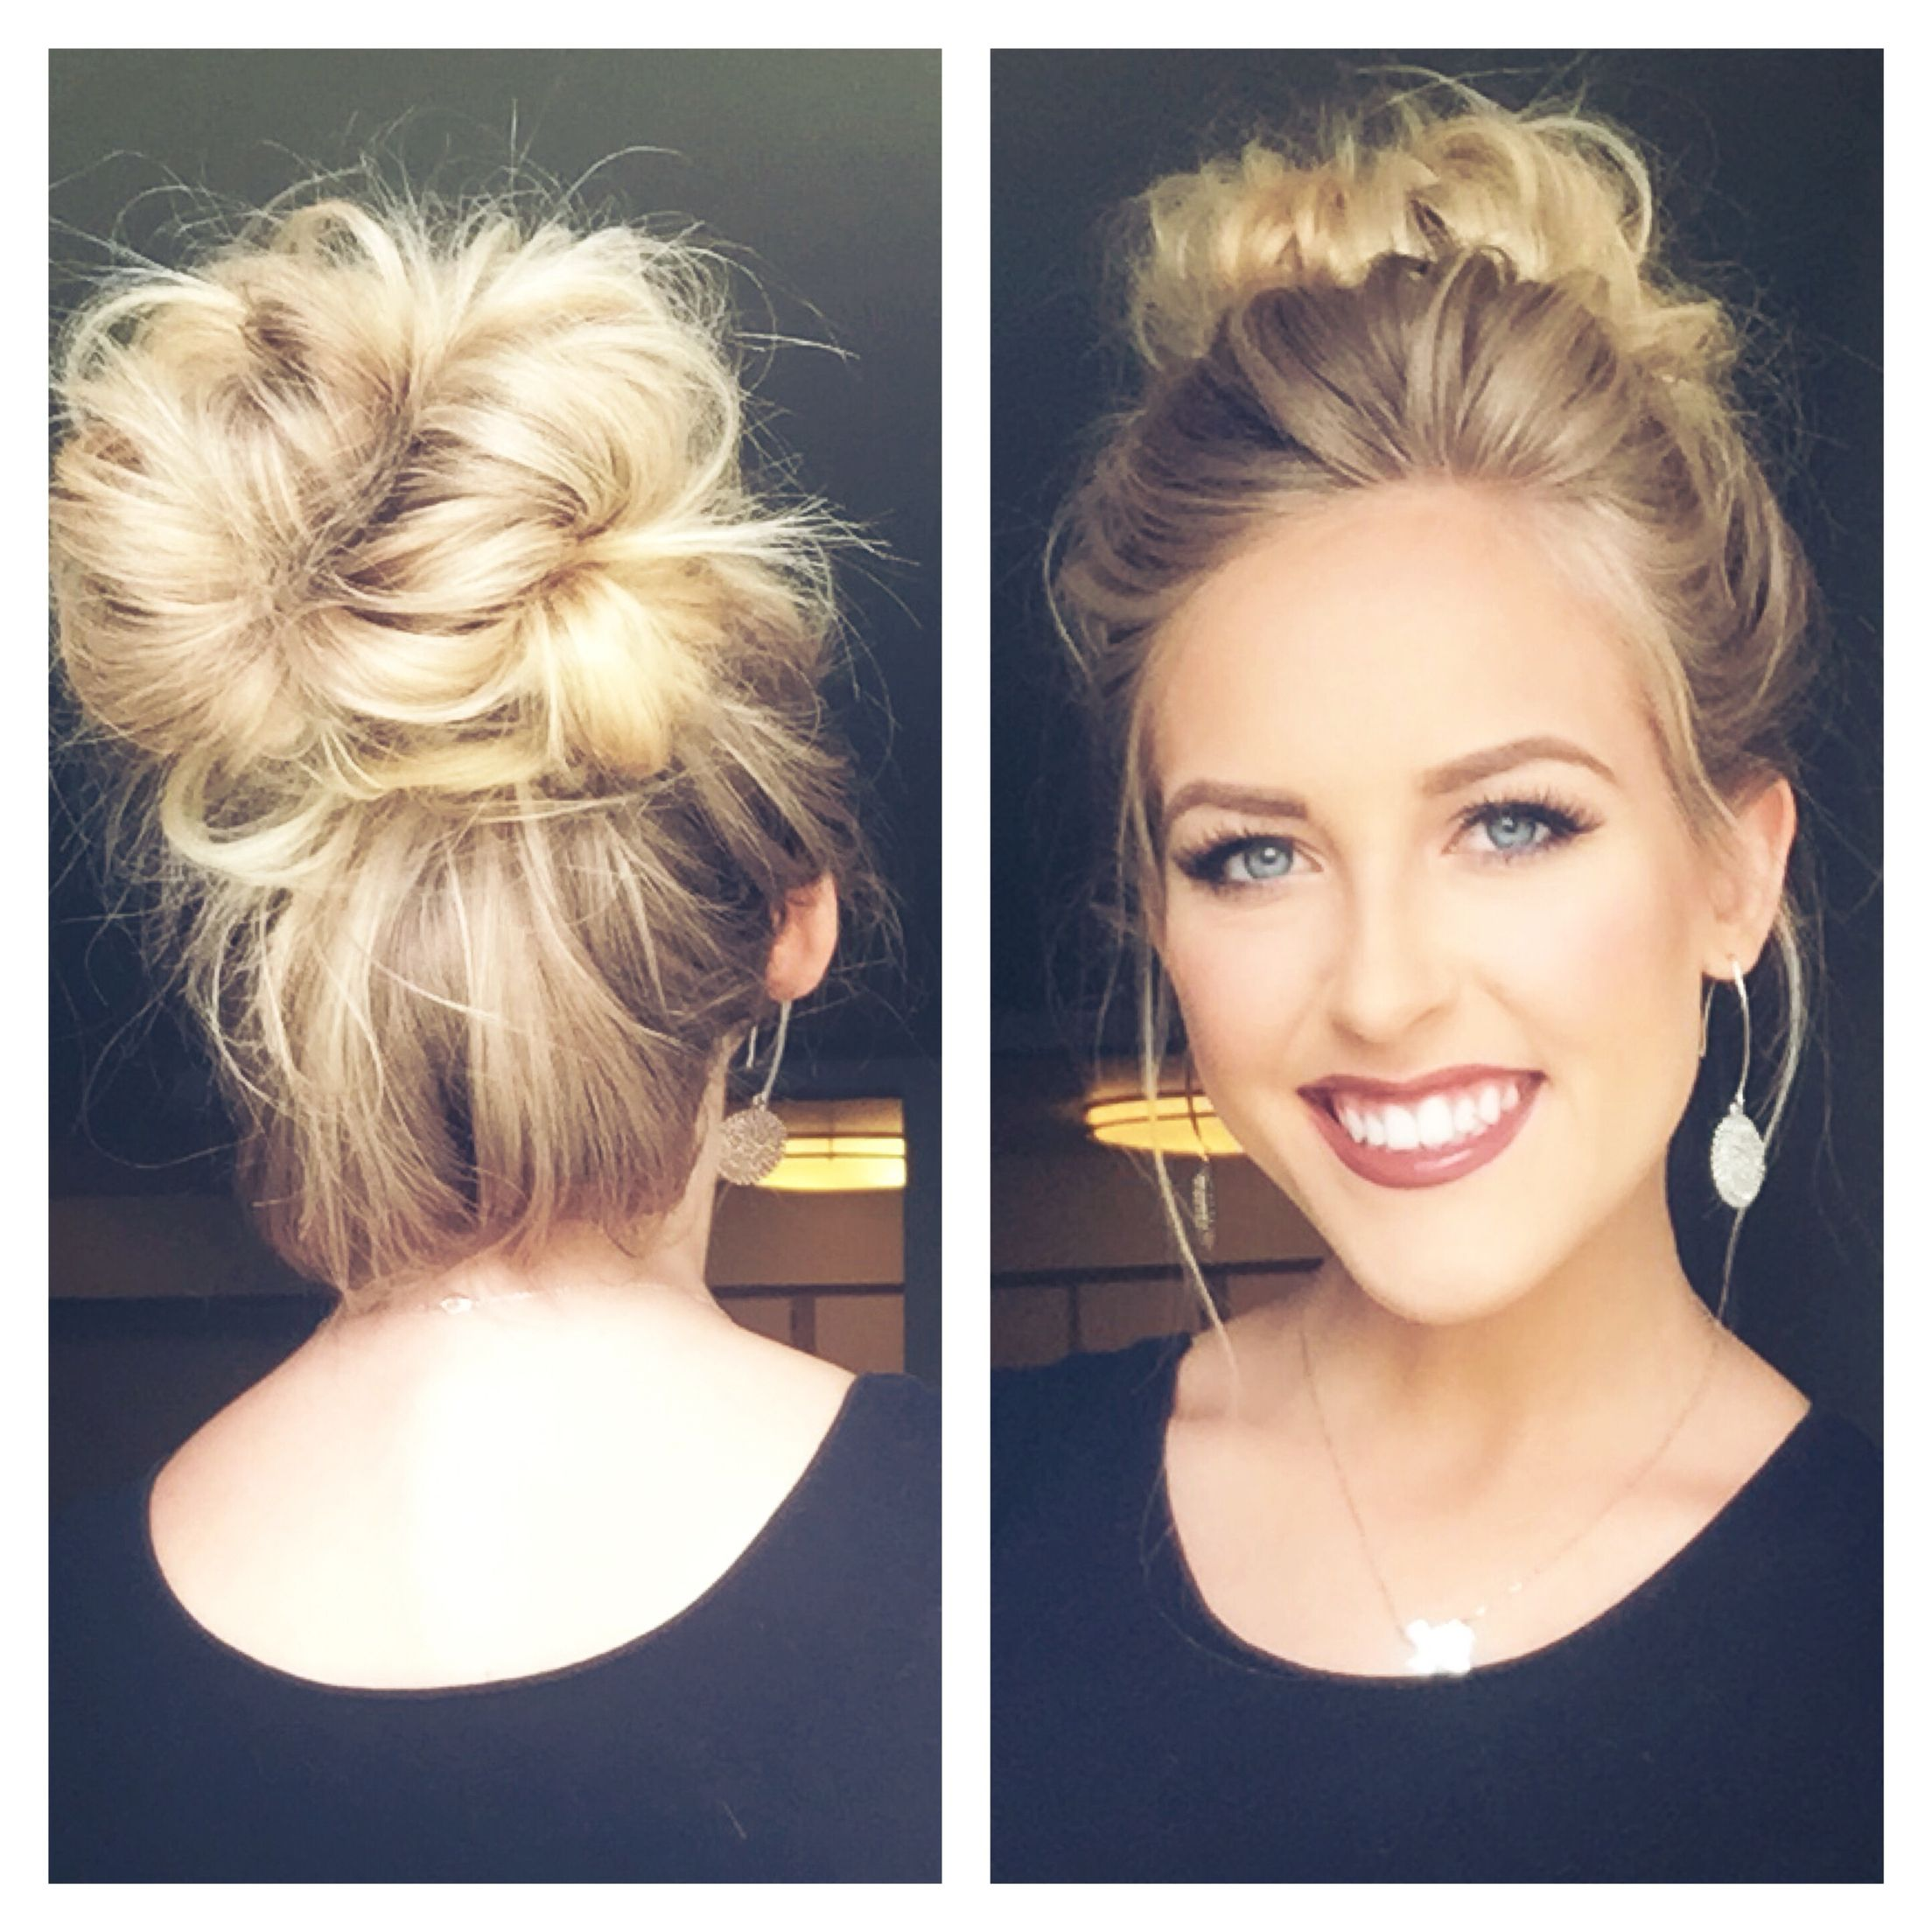 City of College Station   Hair styles, Medium hair styles, Messy ...